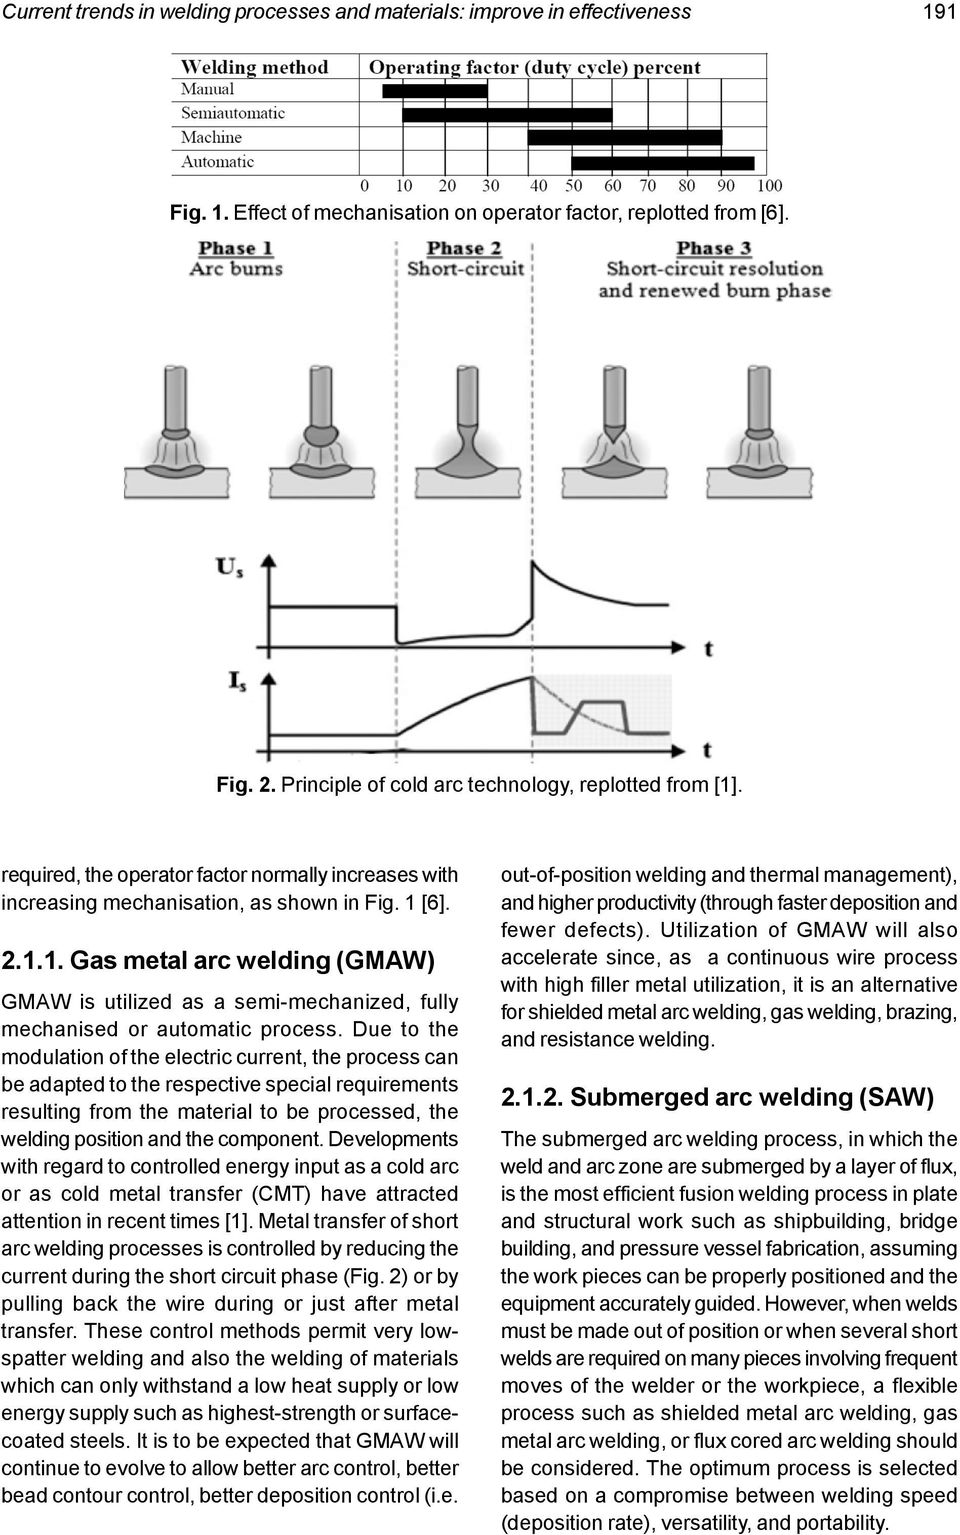 hight resolution of due to the modulation of the electric current the process can be adapted to the